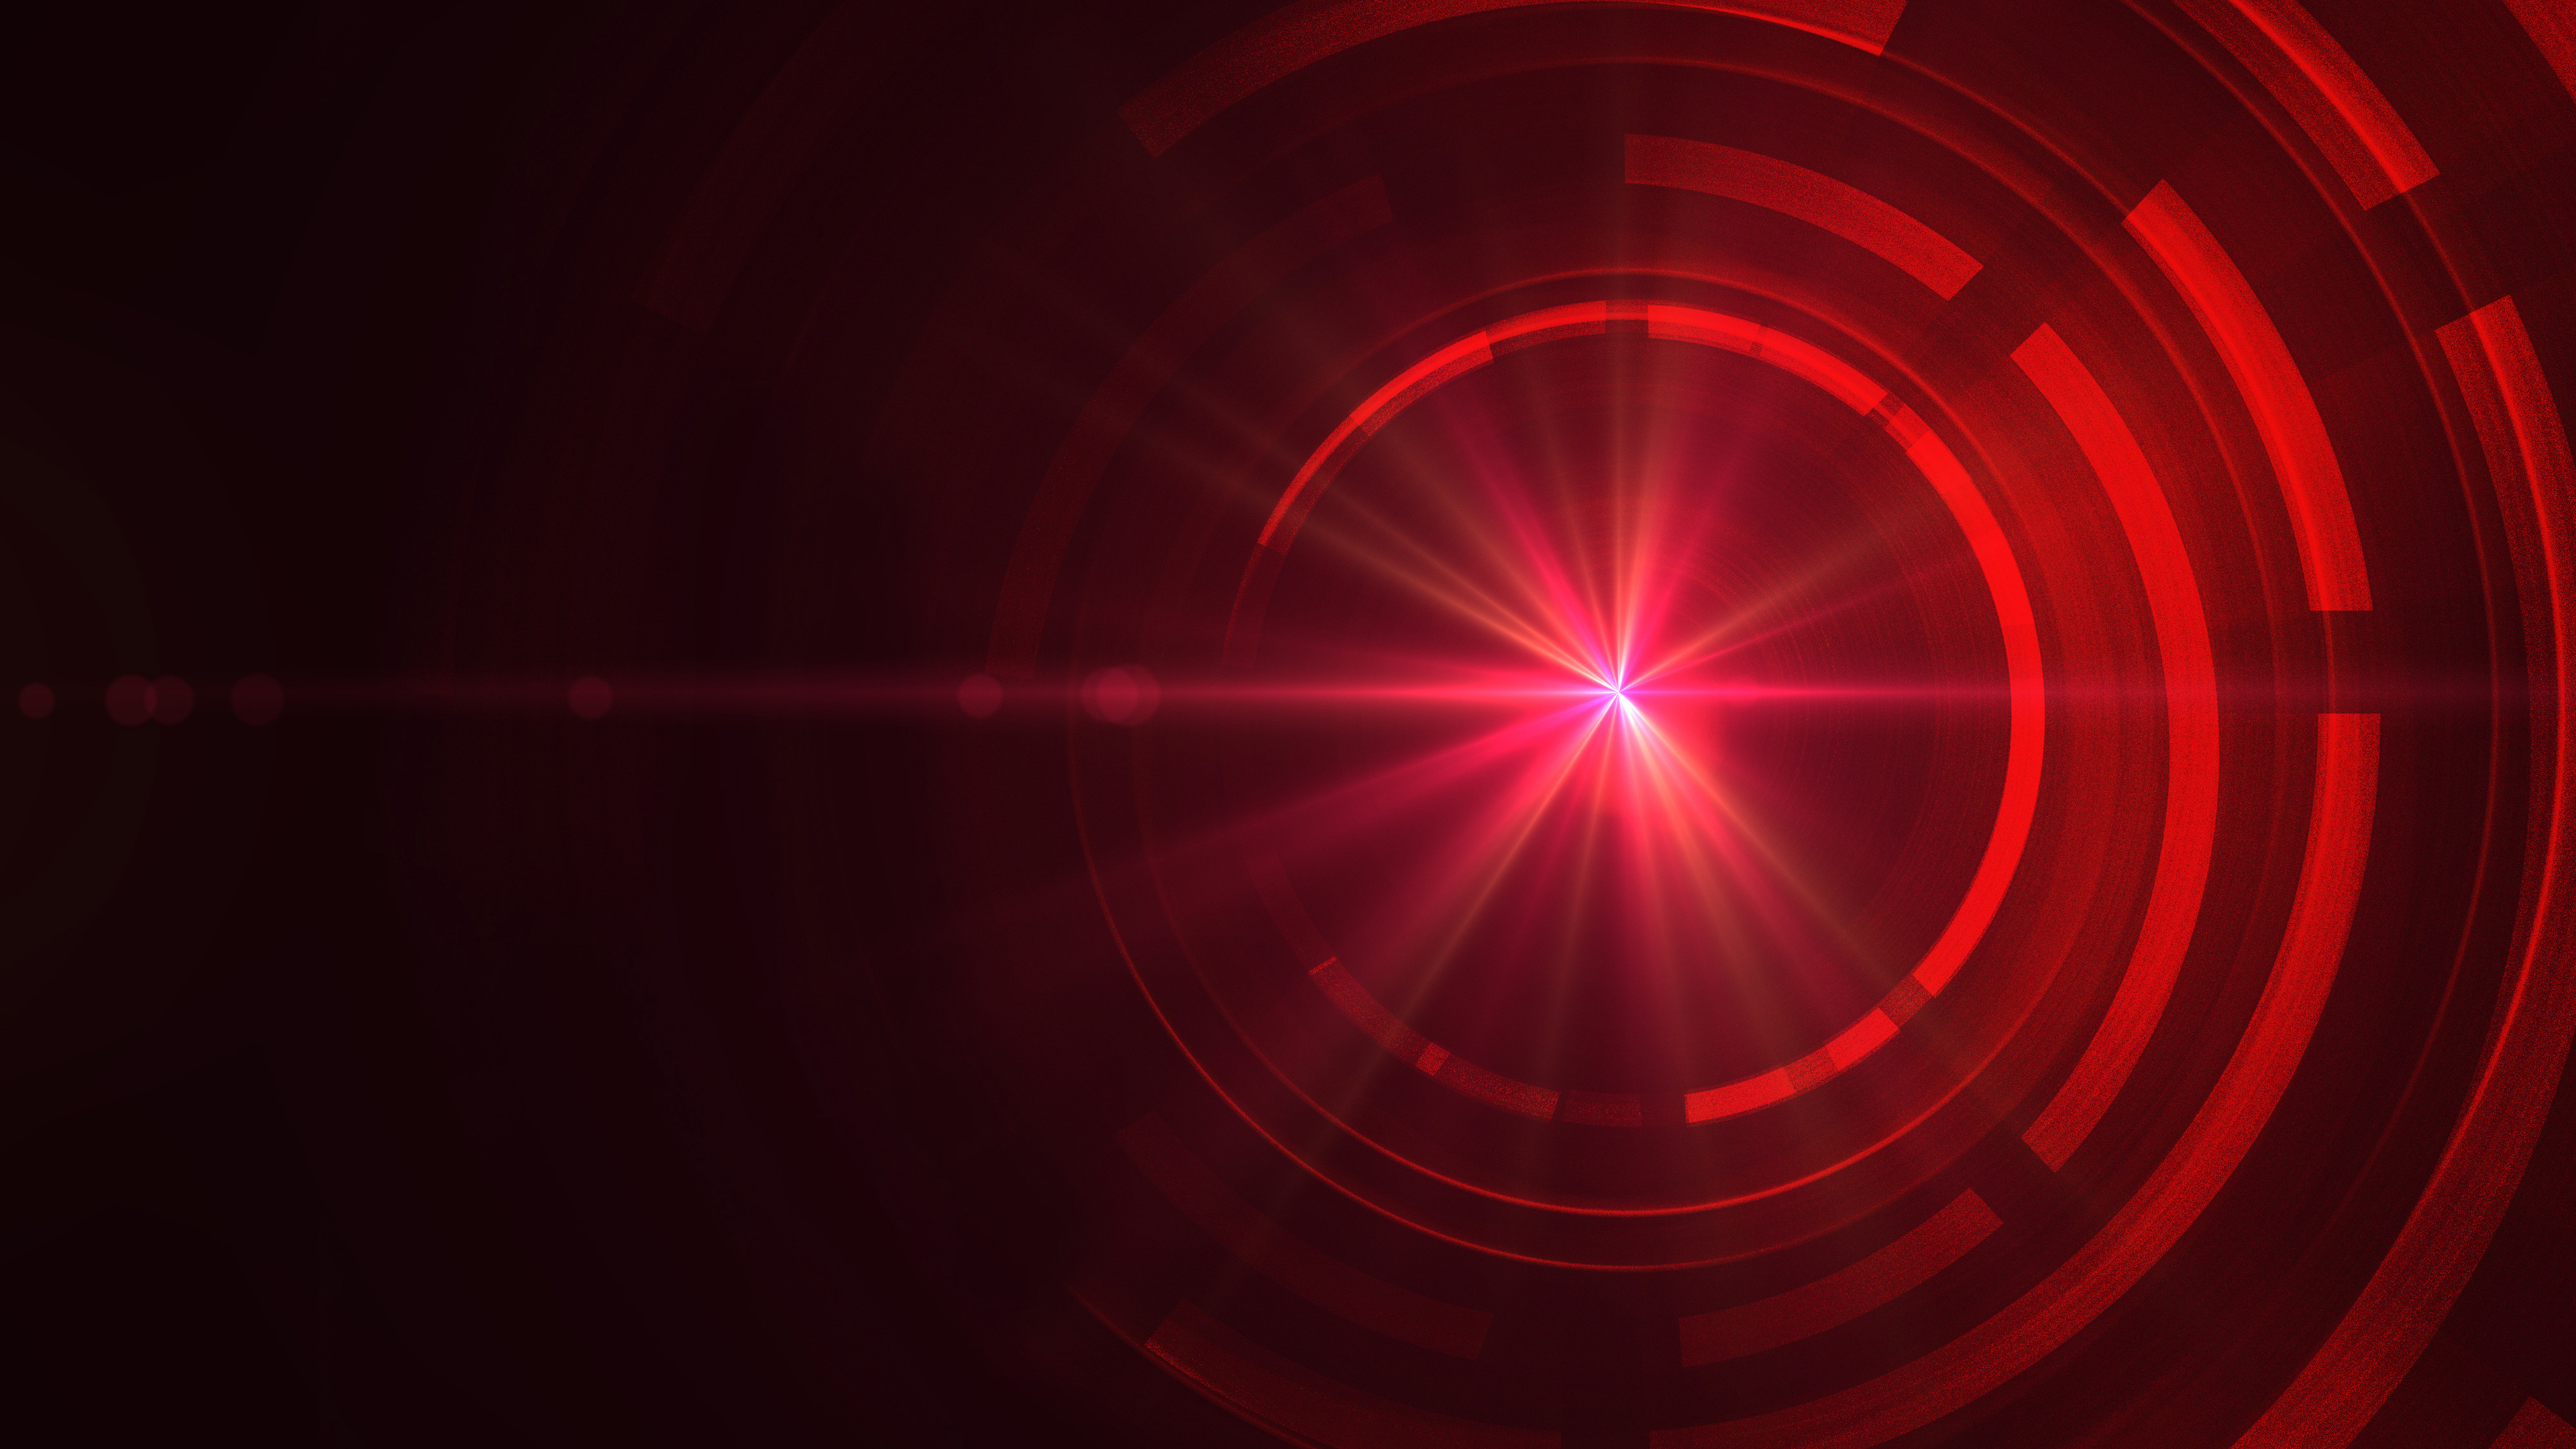 red diamond shine abstract 4k 1539371375 - Red Diamond Shine Abstract 4k - red wallpapers, hd-wallpapers, abstract wallpapers, 4k-wallpapers